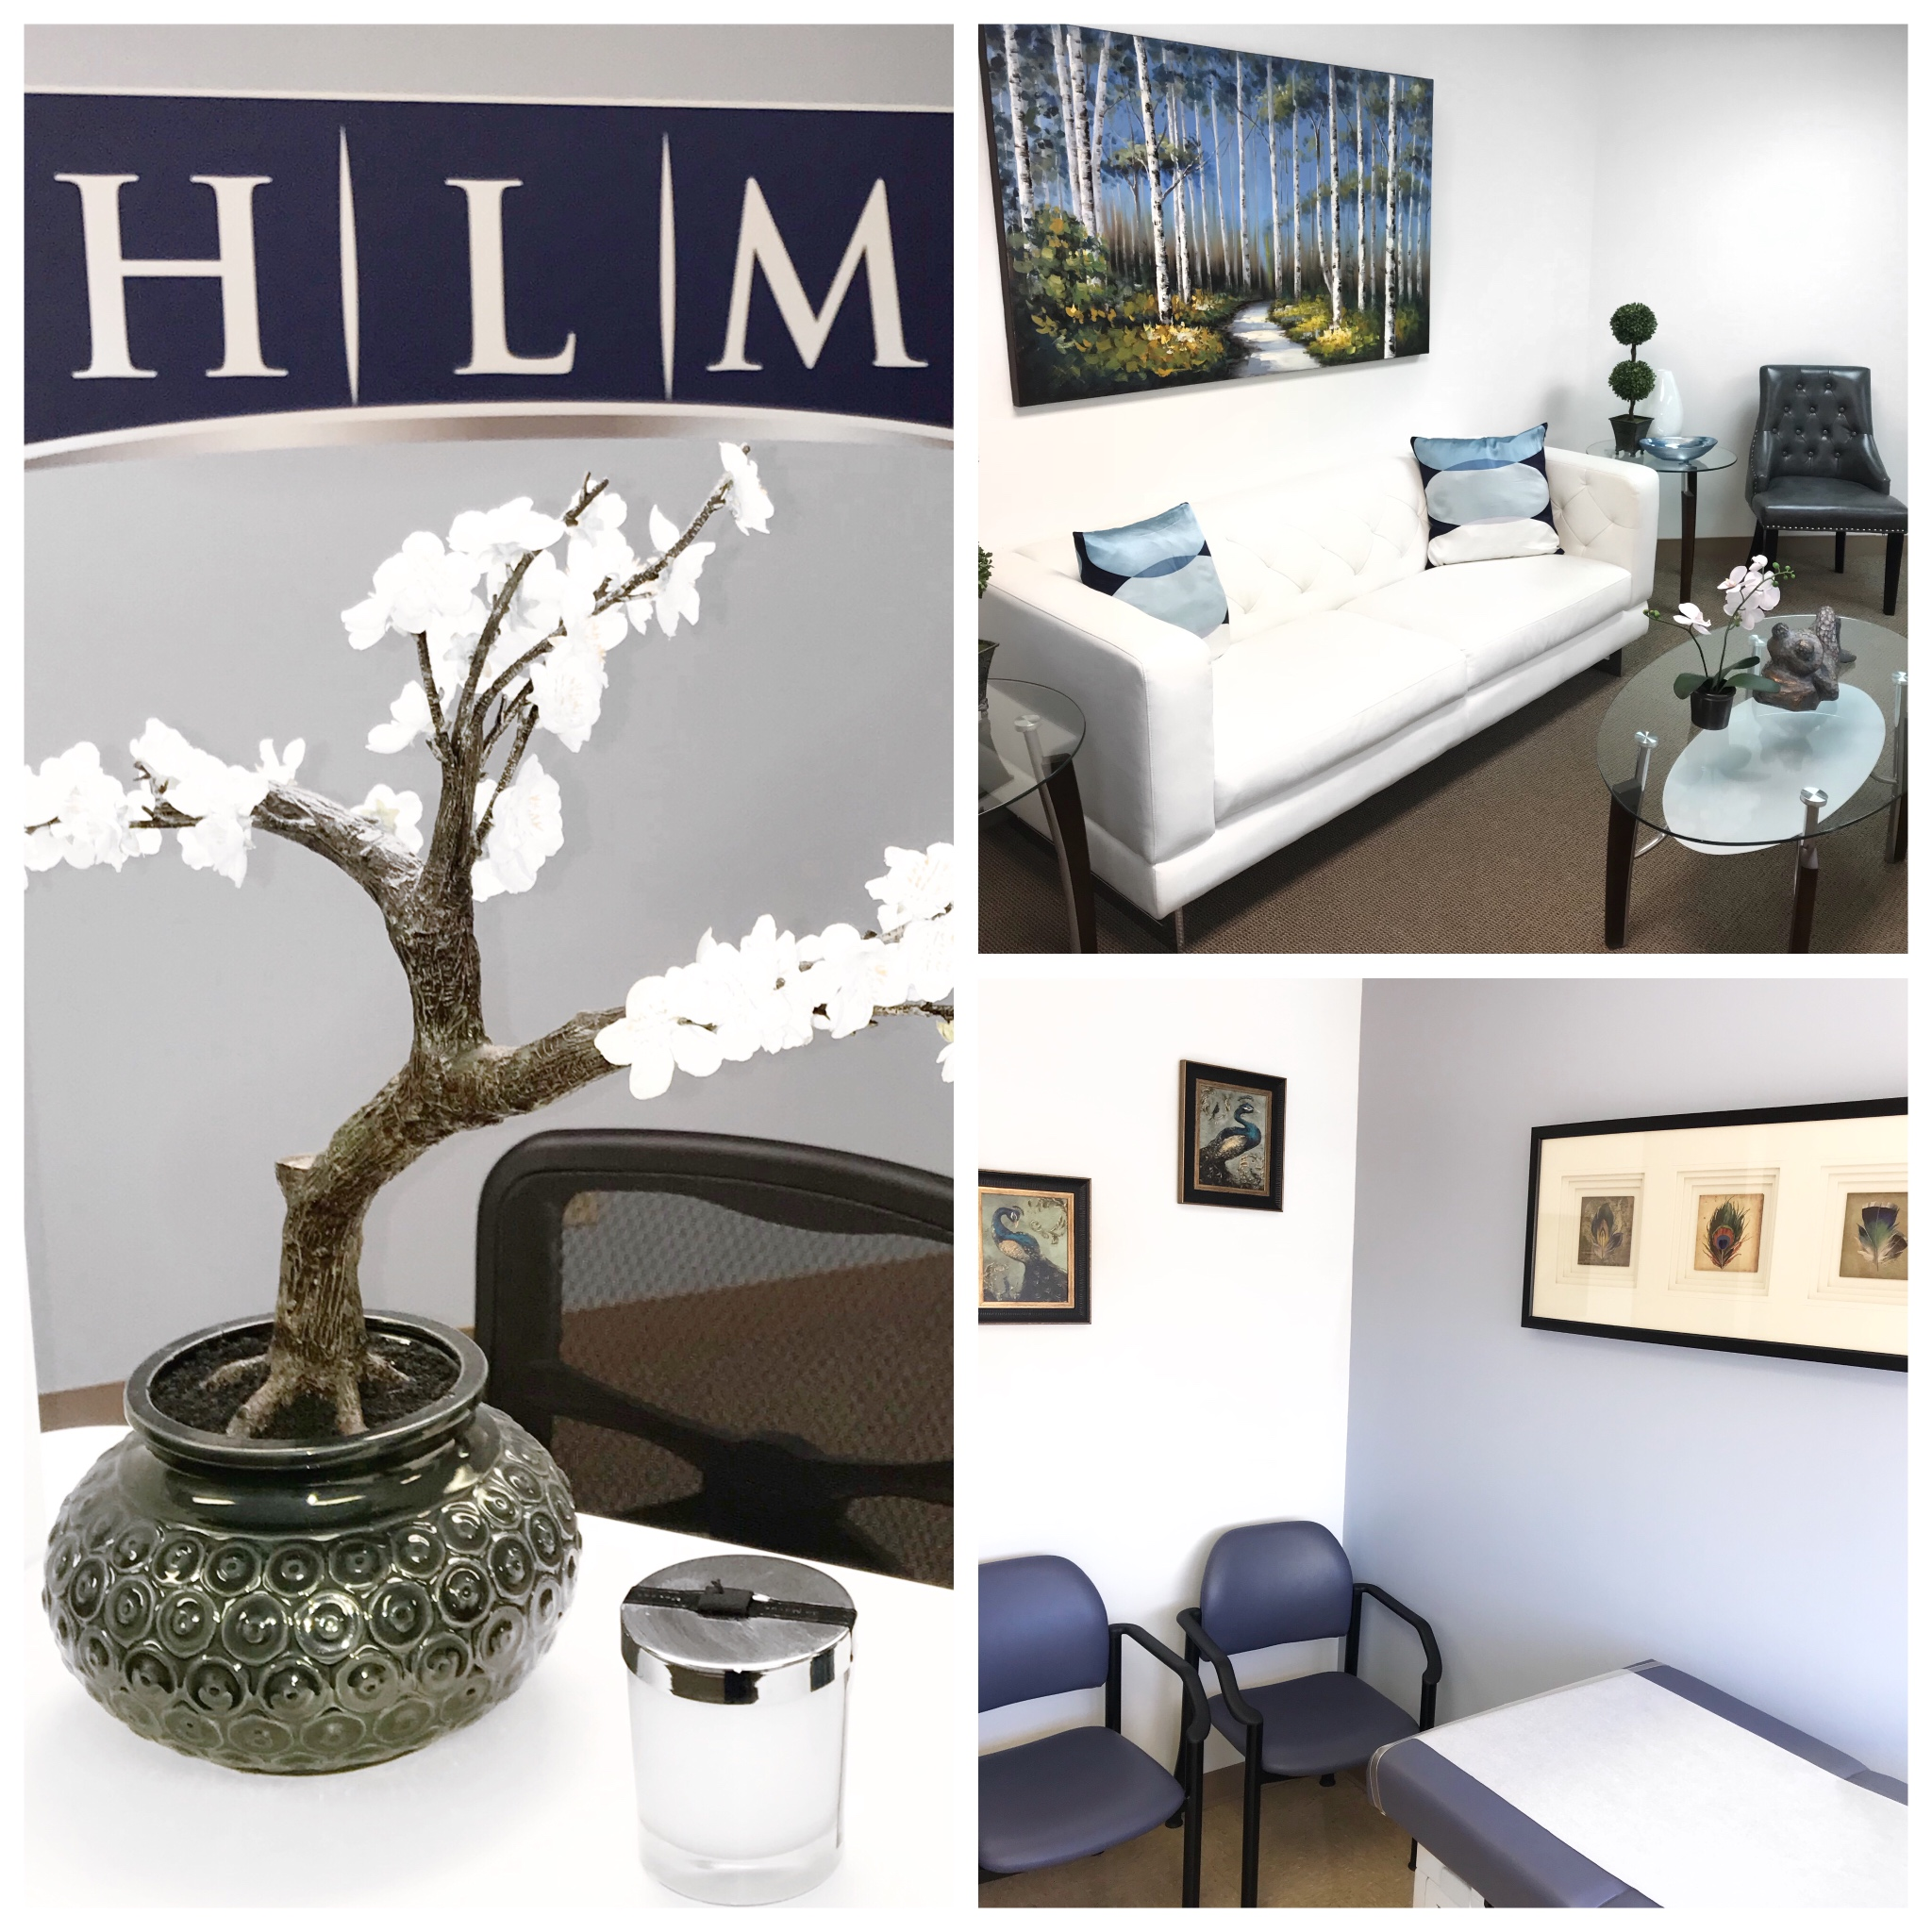 Concierge Medical Office HLM